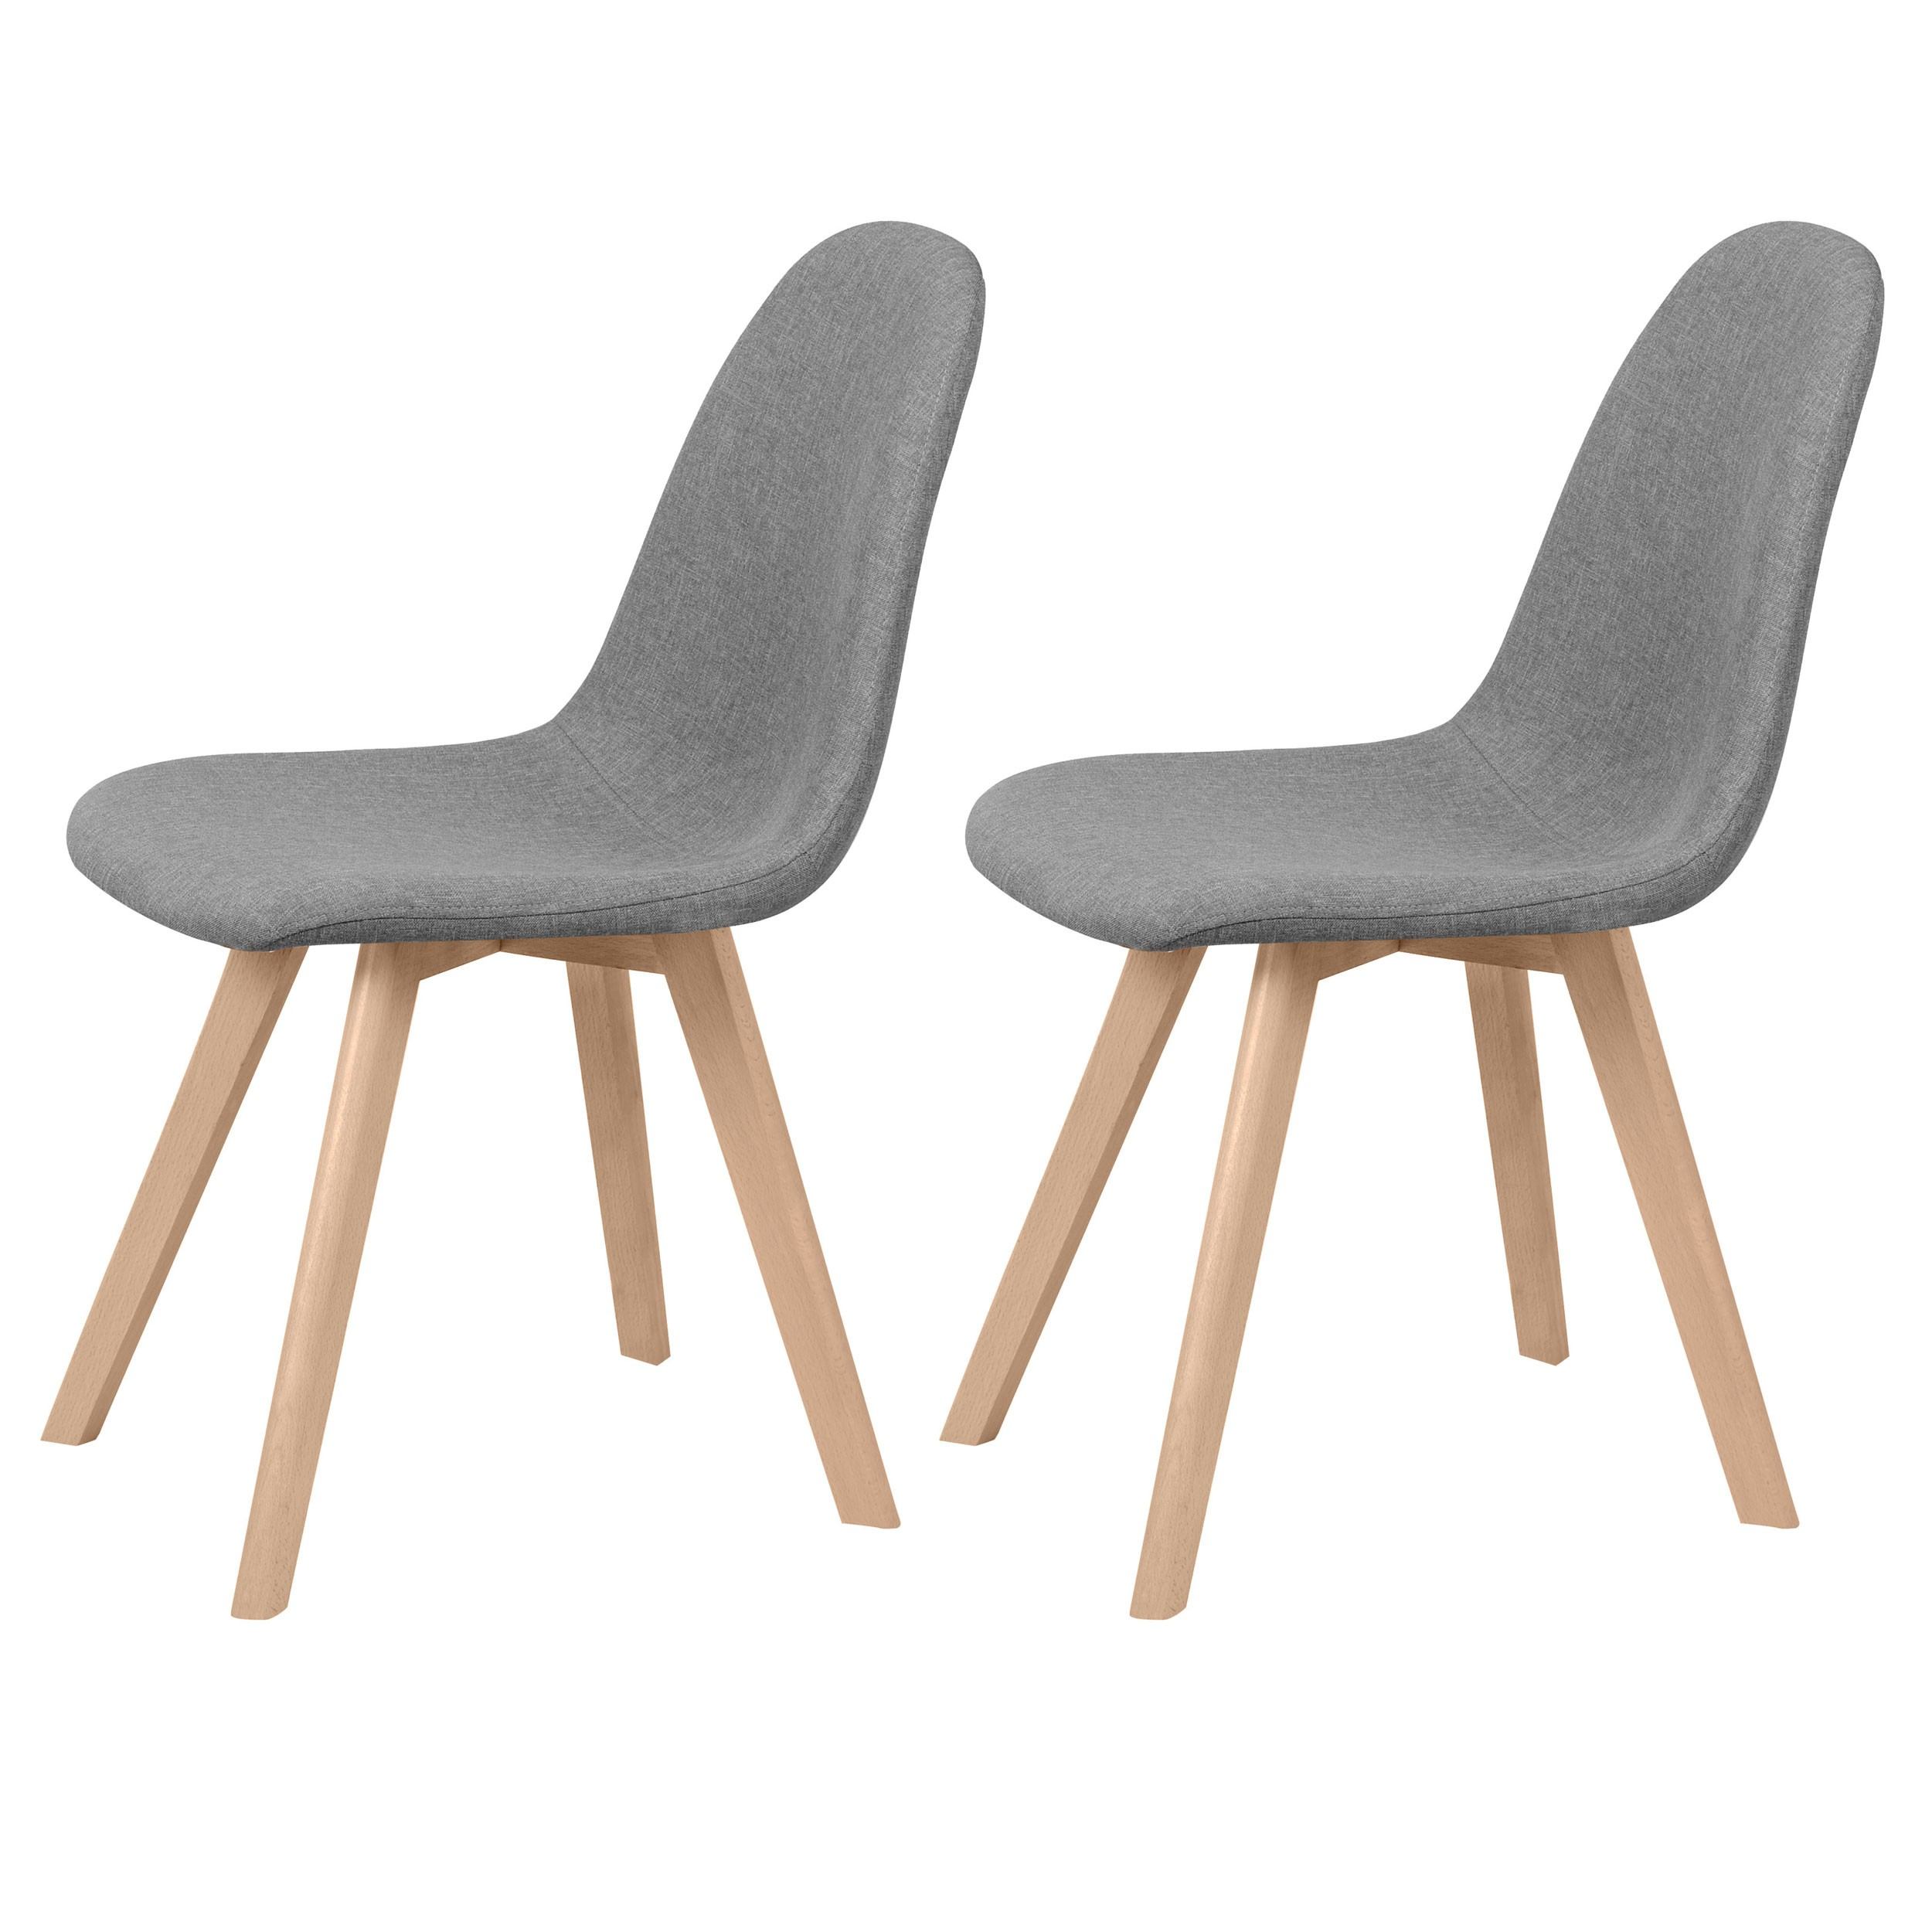 Lot Chaise Scandinave Chaise Skandi Tissu Grise Lot De 2